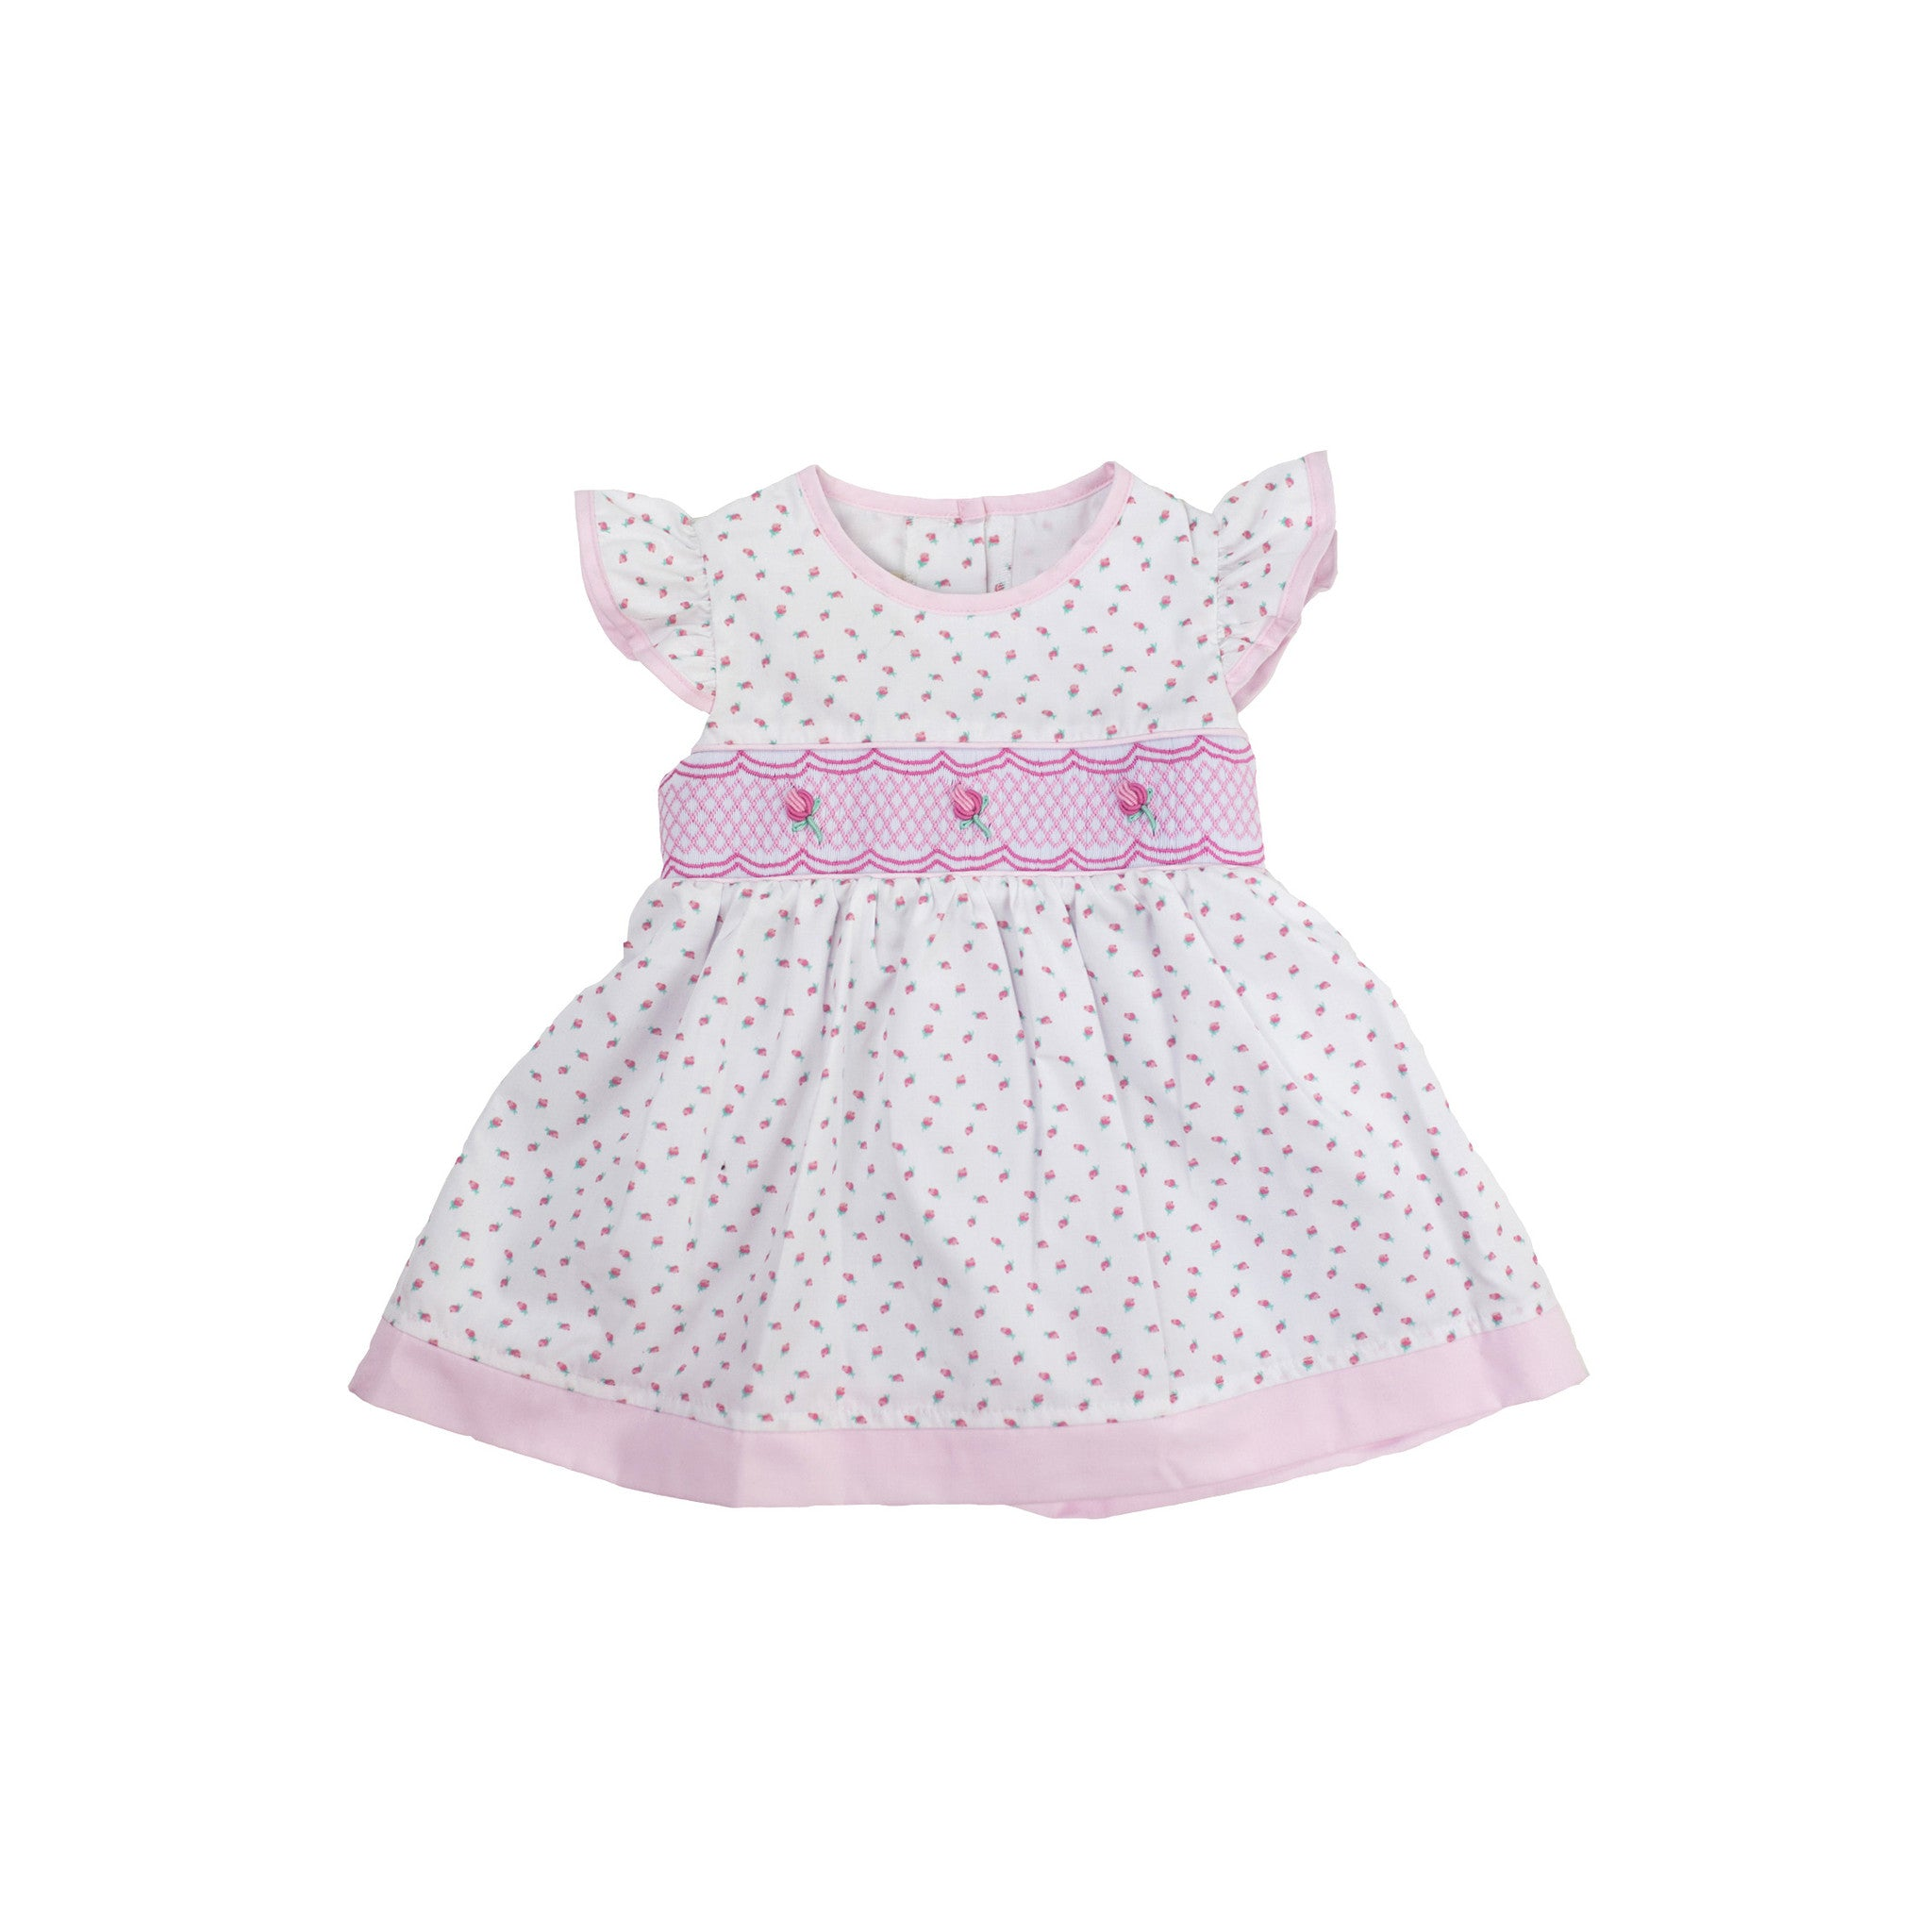 Clothing and Accessories for Babies Born with a Refined Sense of ...